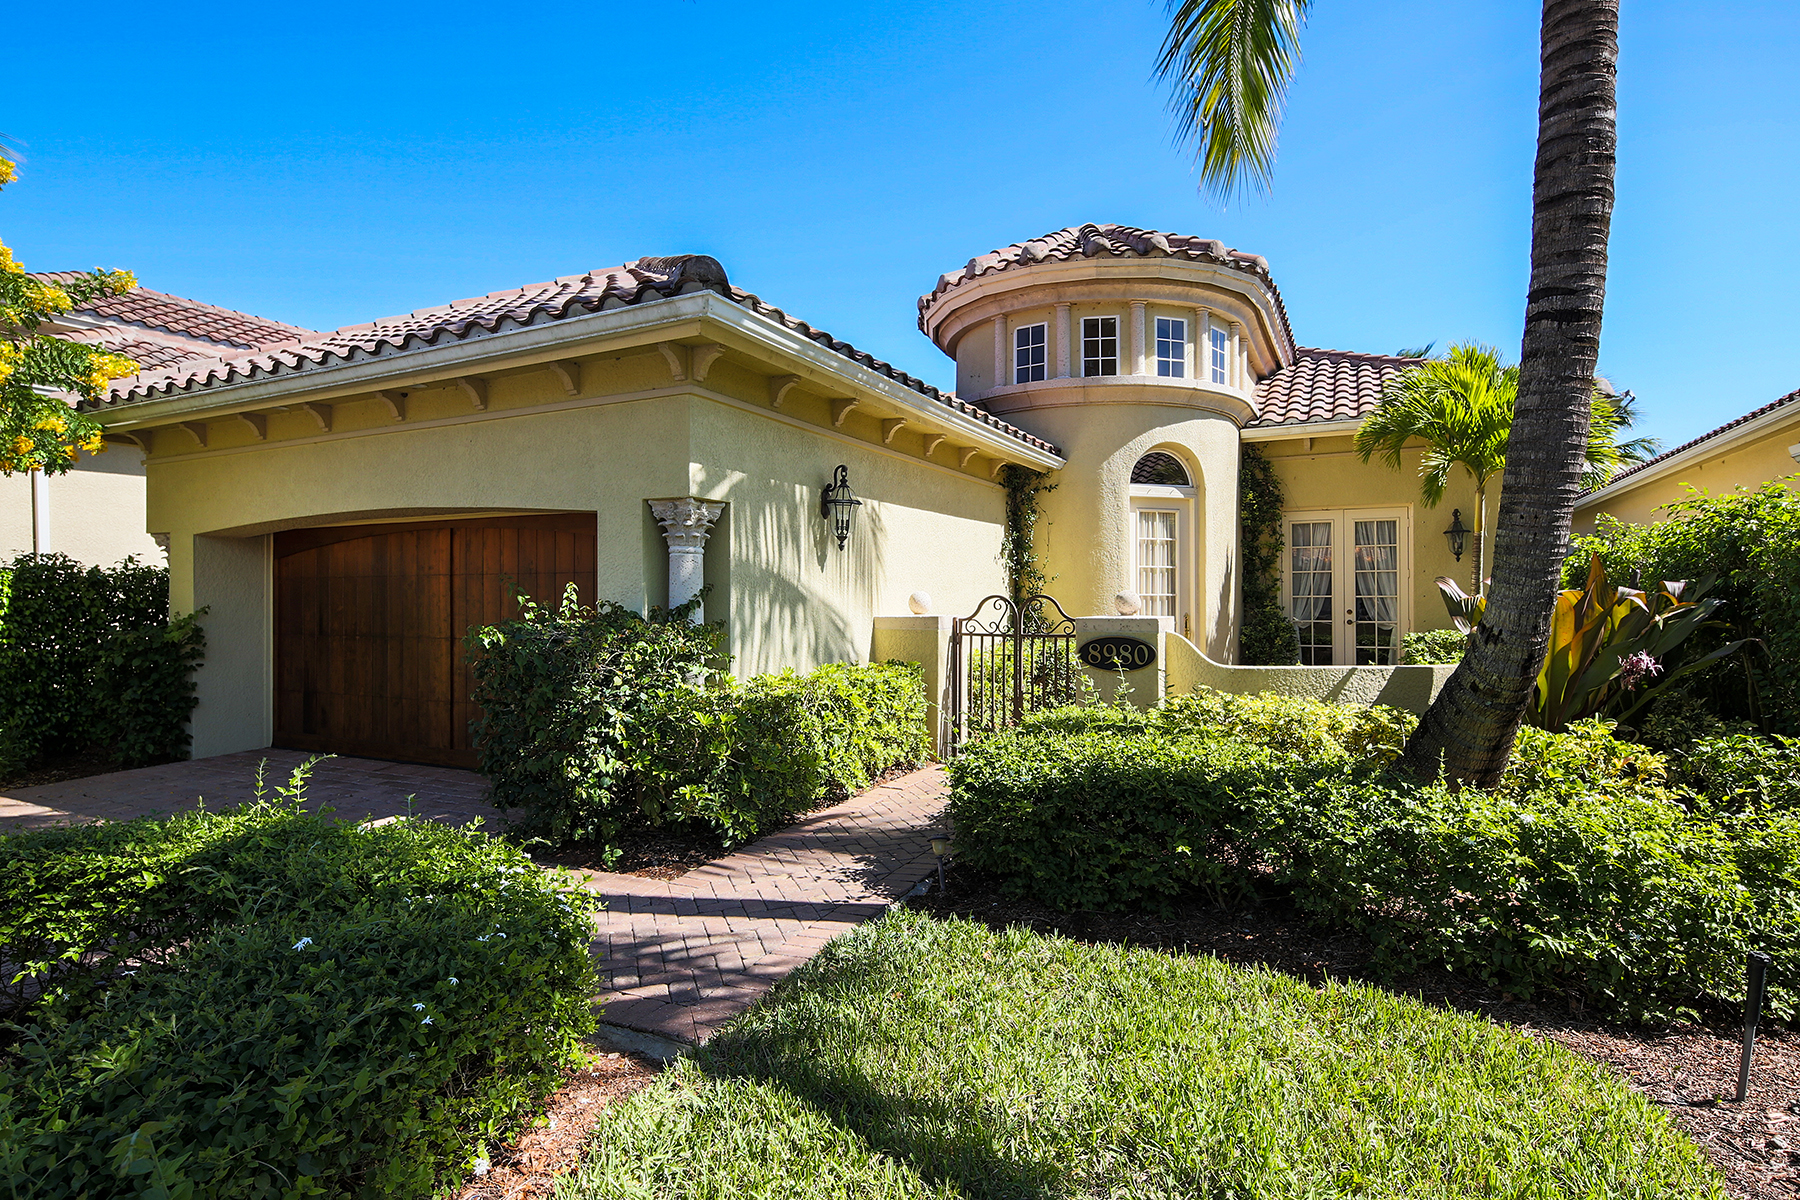 Single Family Home for Sale at FIDDLERS CREECRANBERRY CROSSING 8980 Cherry Oaks Trl Naples, Florida 34114 United States